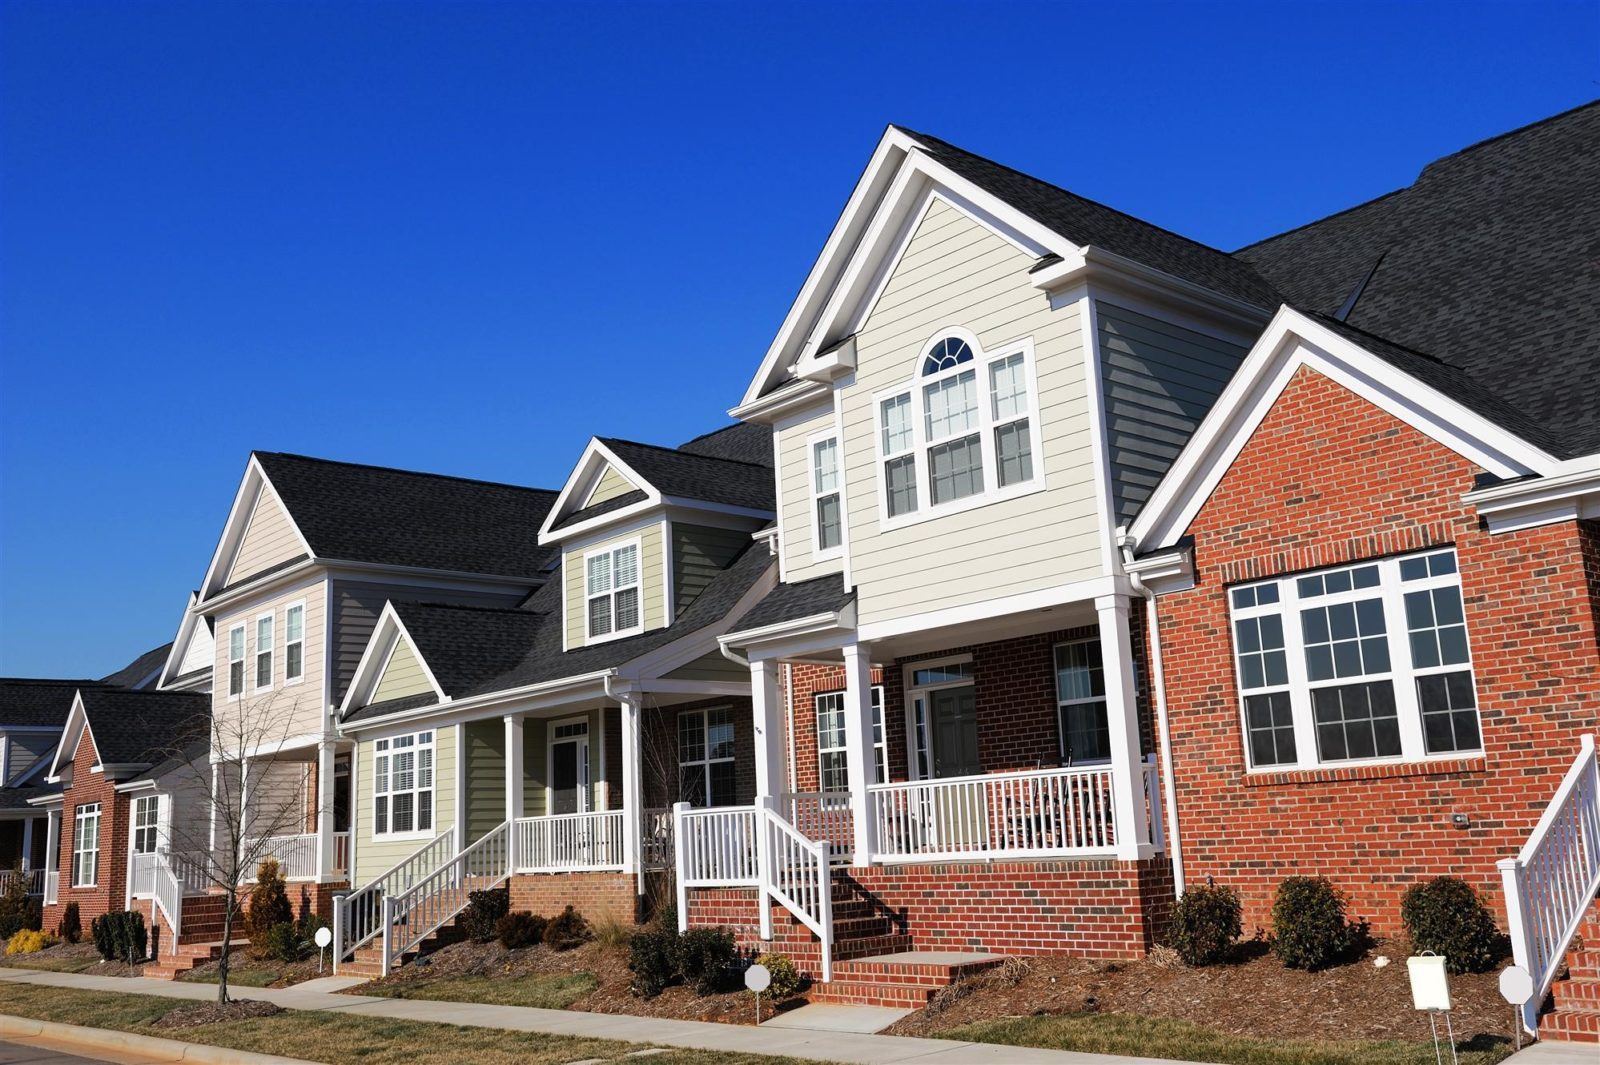 the difference between semi-detached homes and townhomes